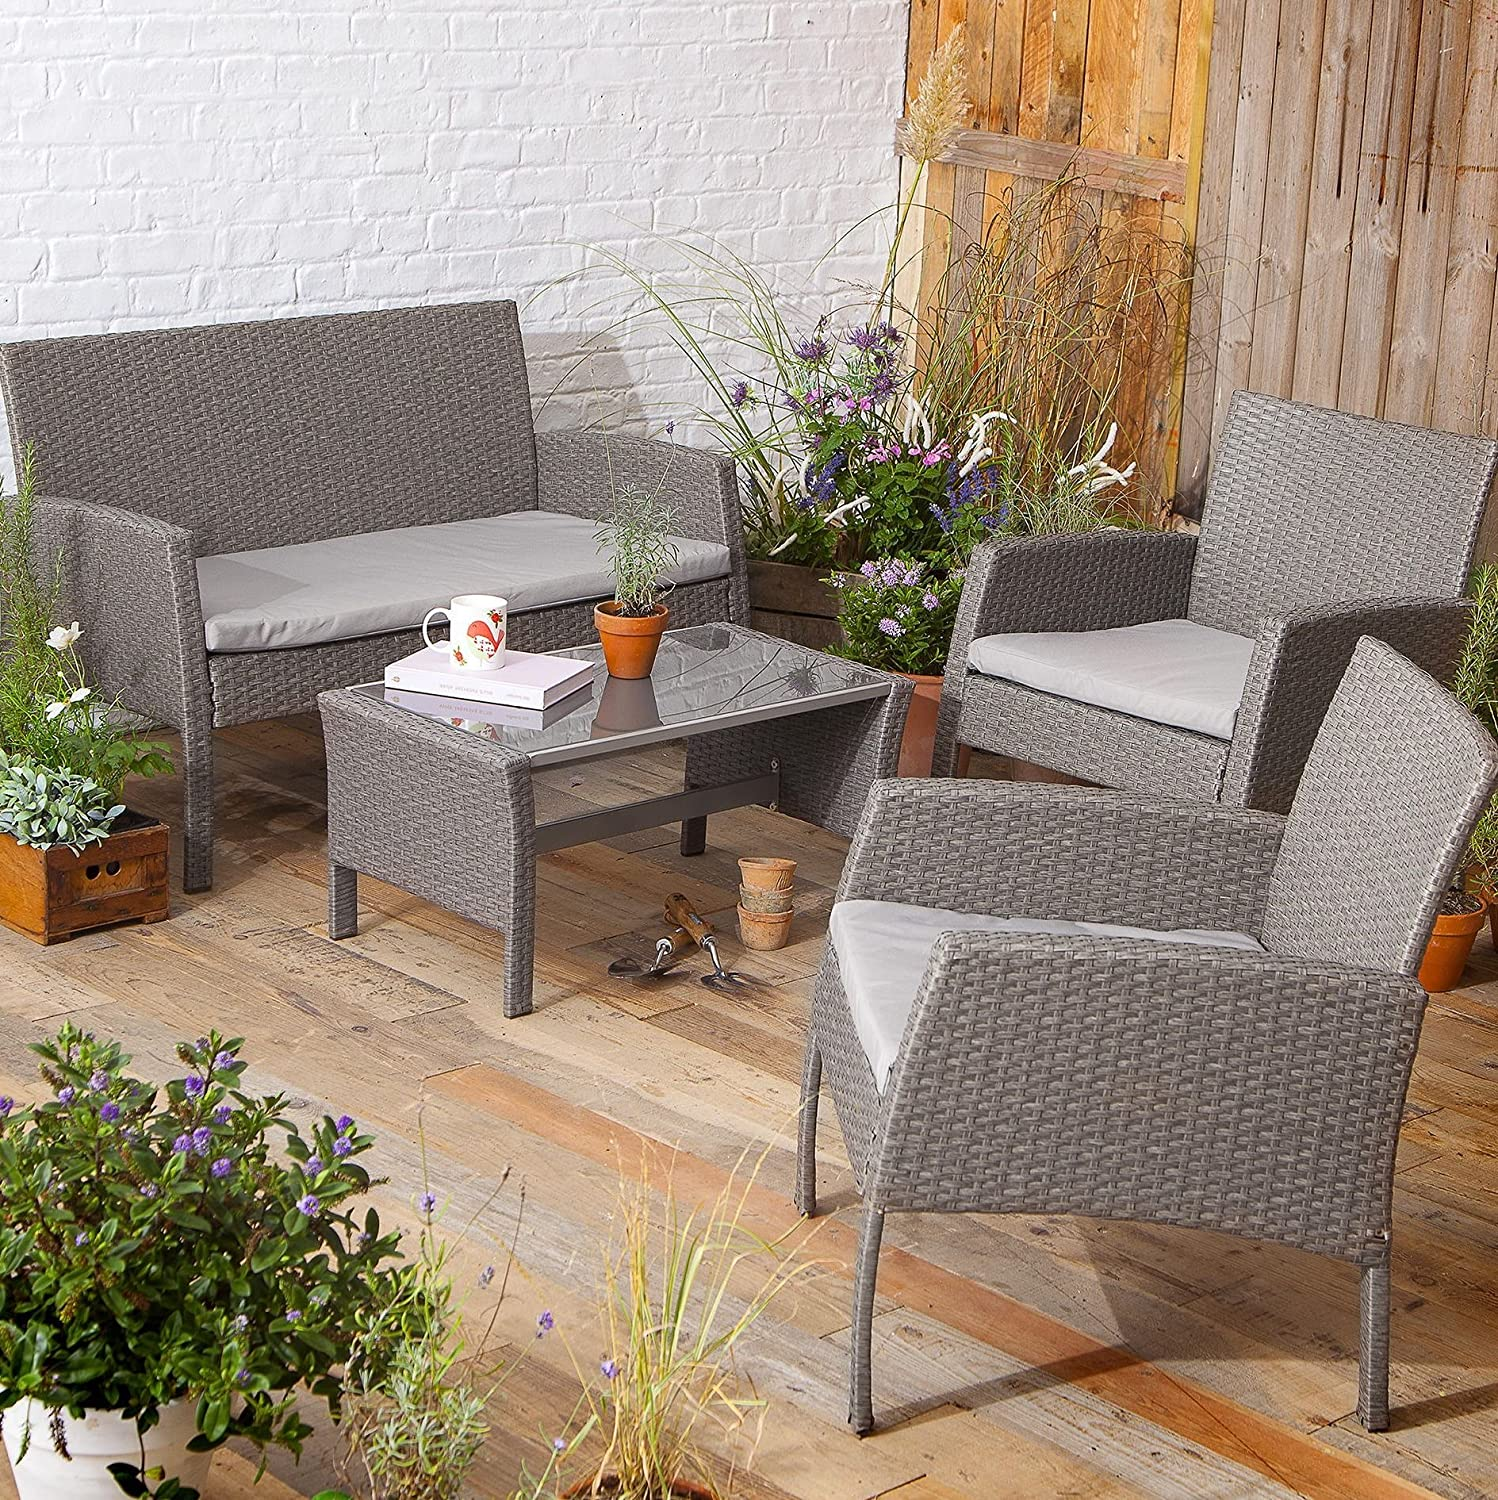 Tesco NEW San Marino 10 Piece Rattan Garden Lounge Set Table Bench